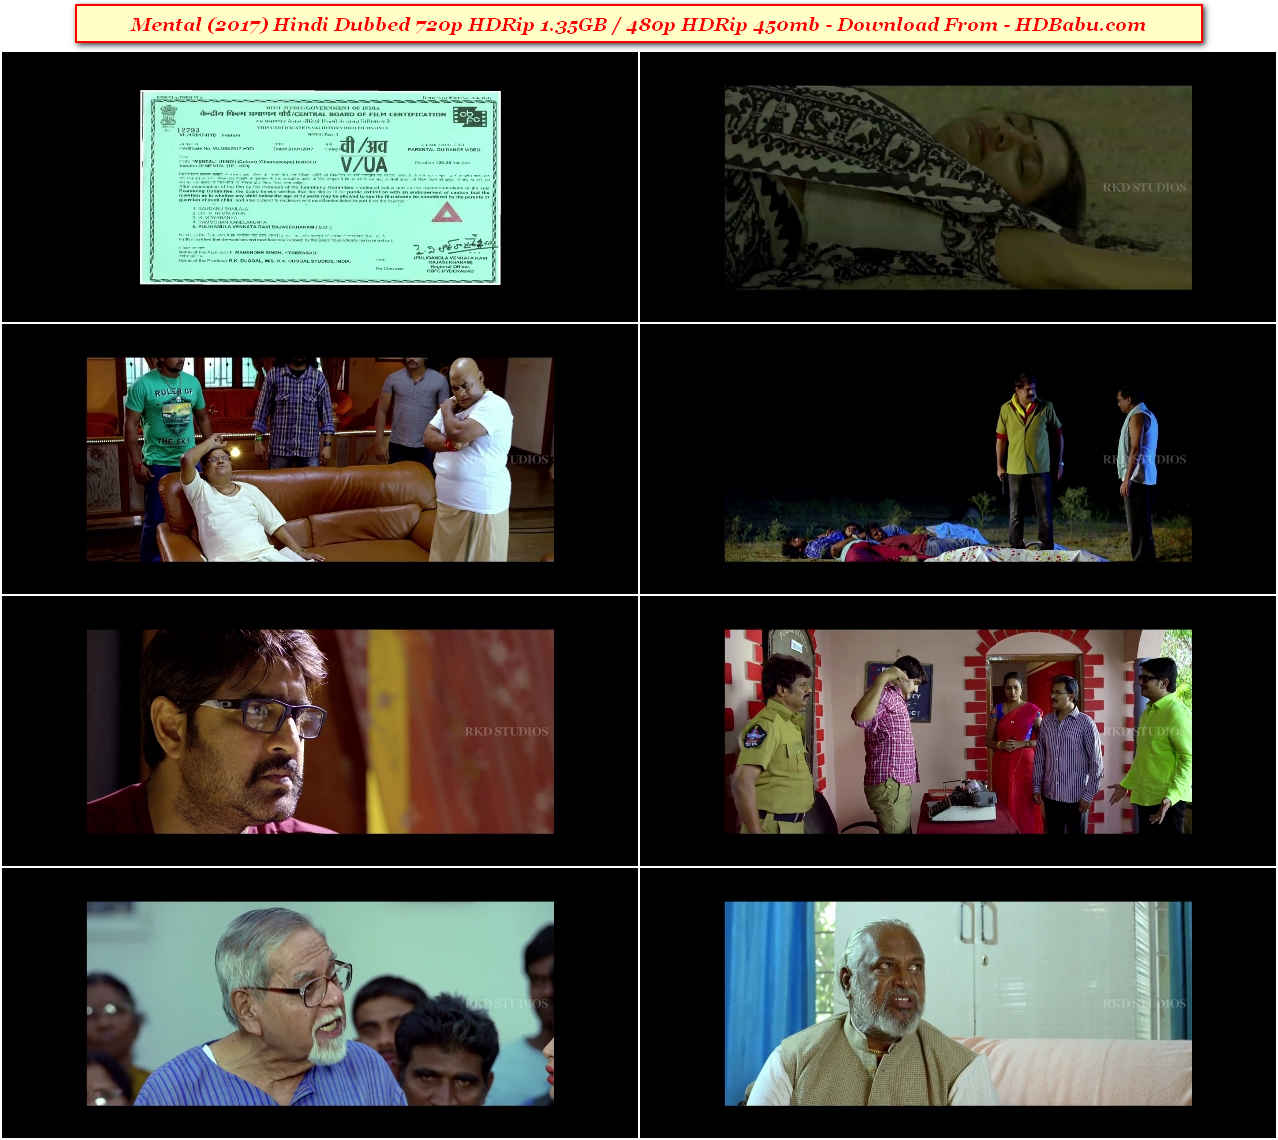 Mental Hindi Dubbed Full Movie Download